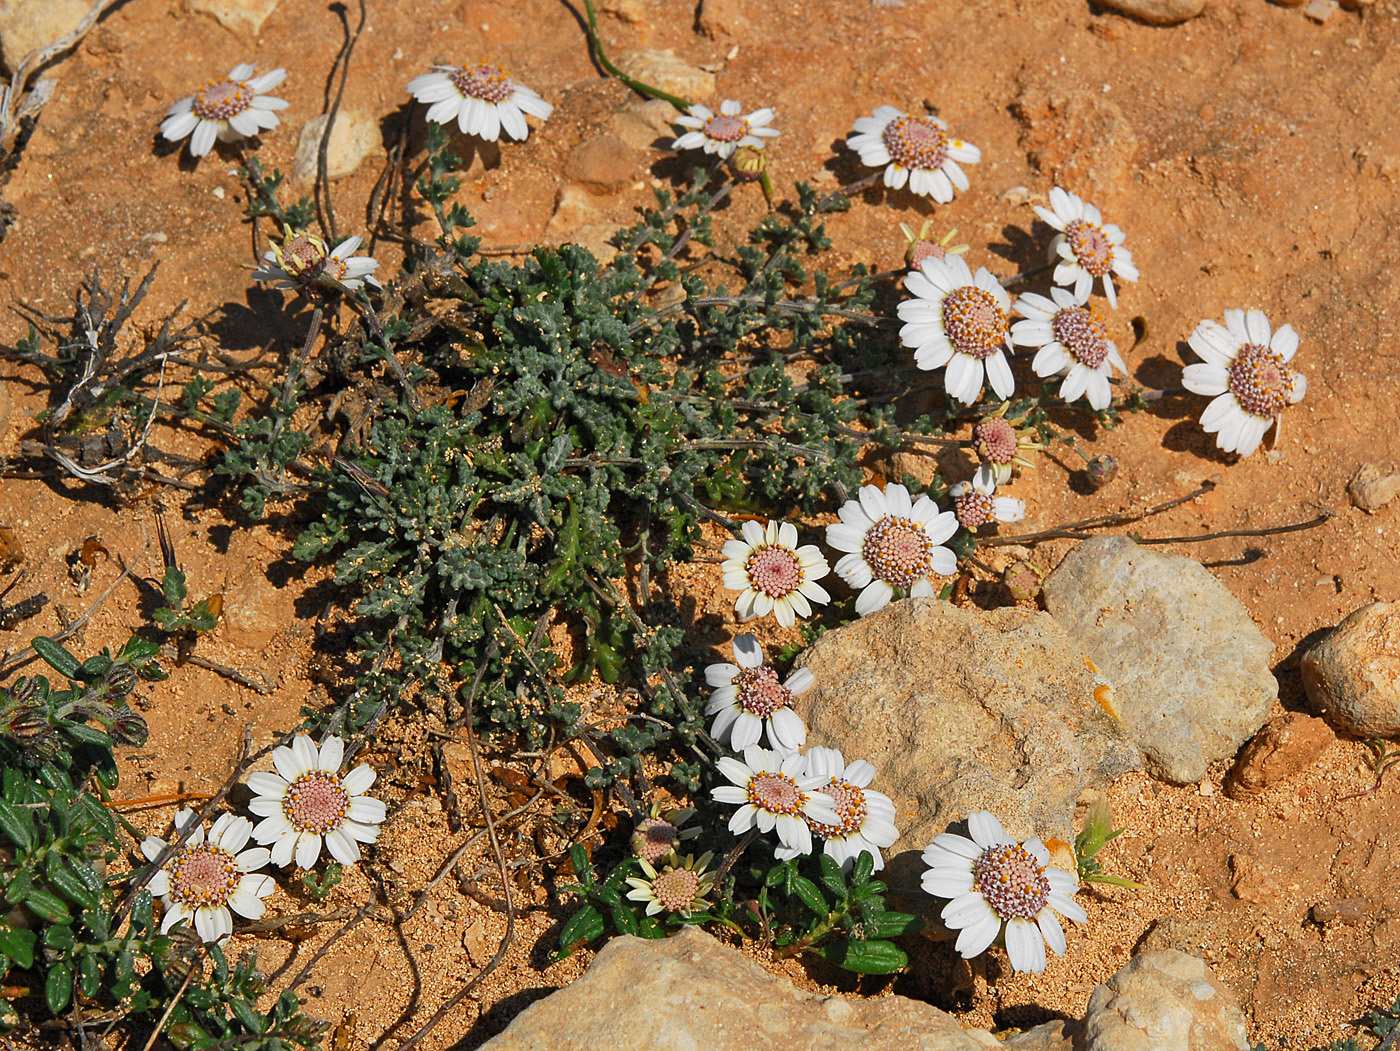 https://pictures.bgbm.org/digilib/Scaler?fn=Cyprus/Anthemis_tricolor_A1.jpg&mo=file